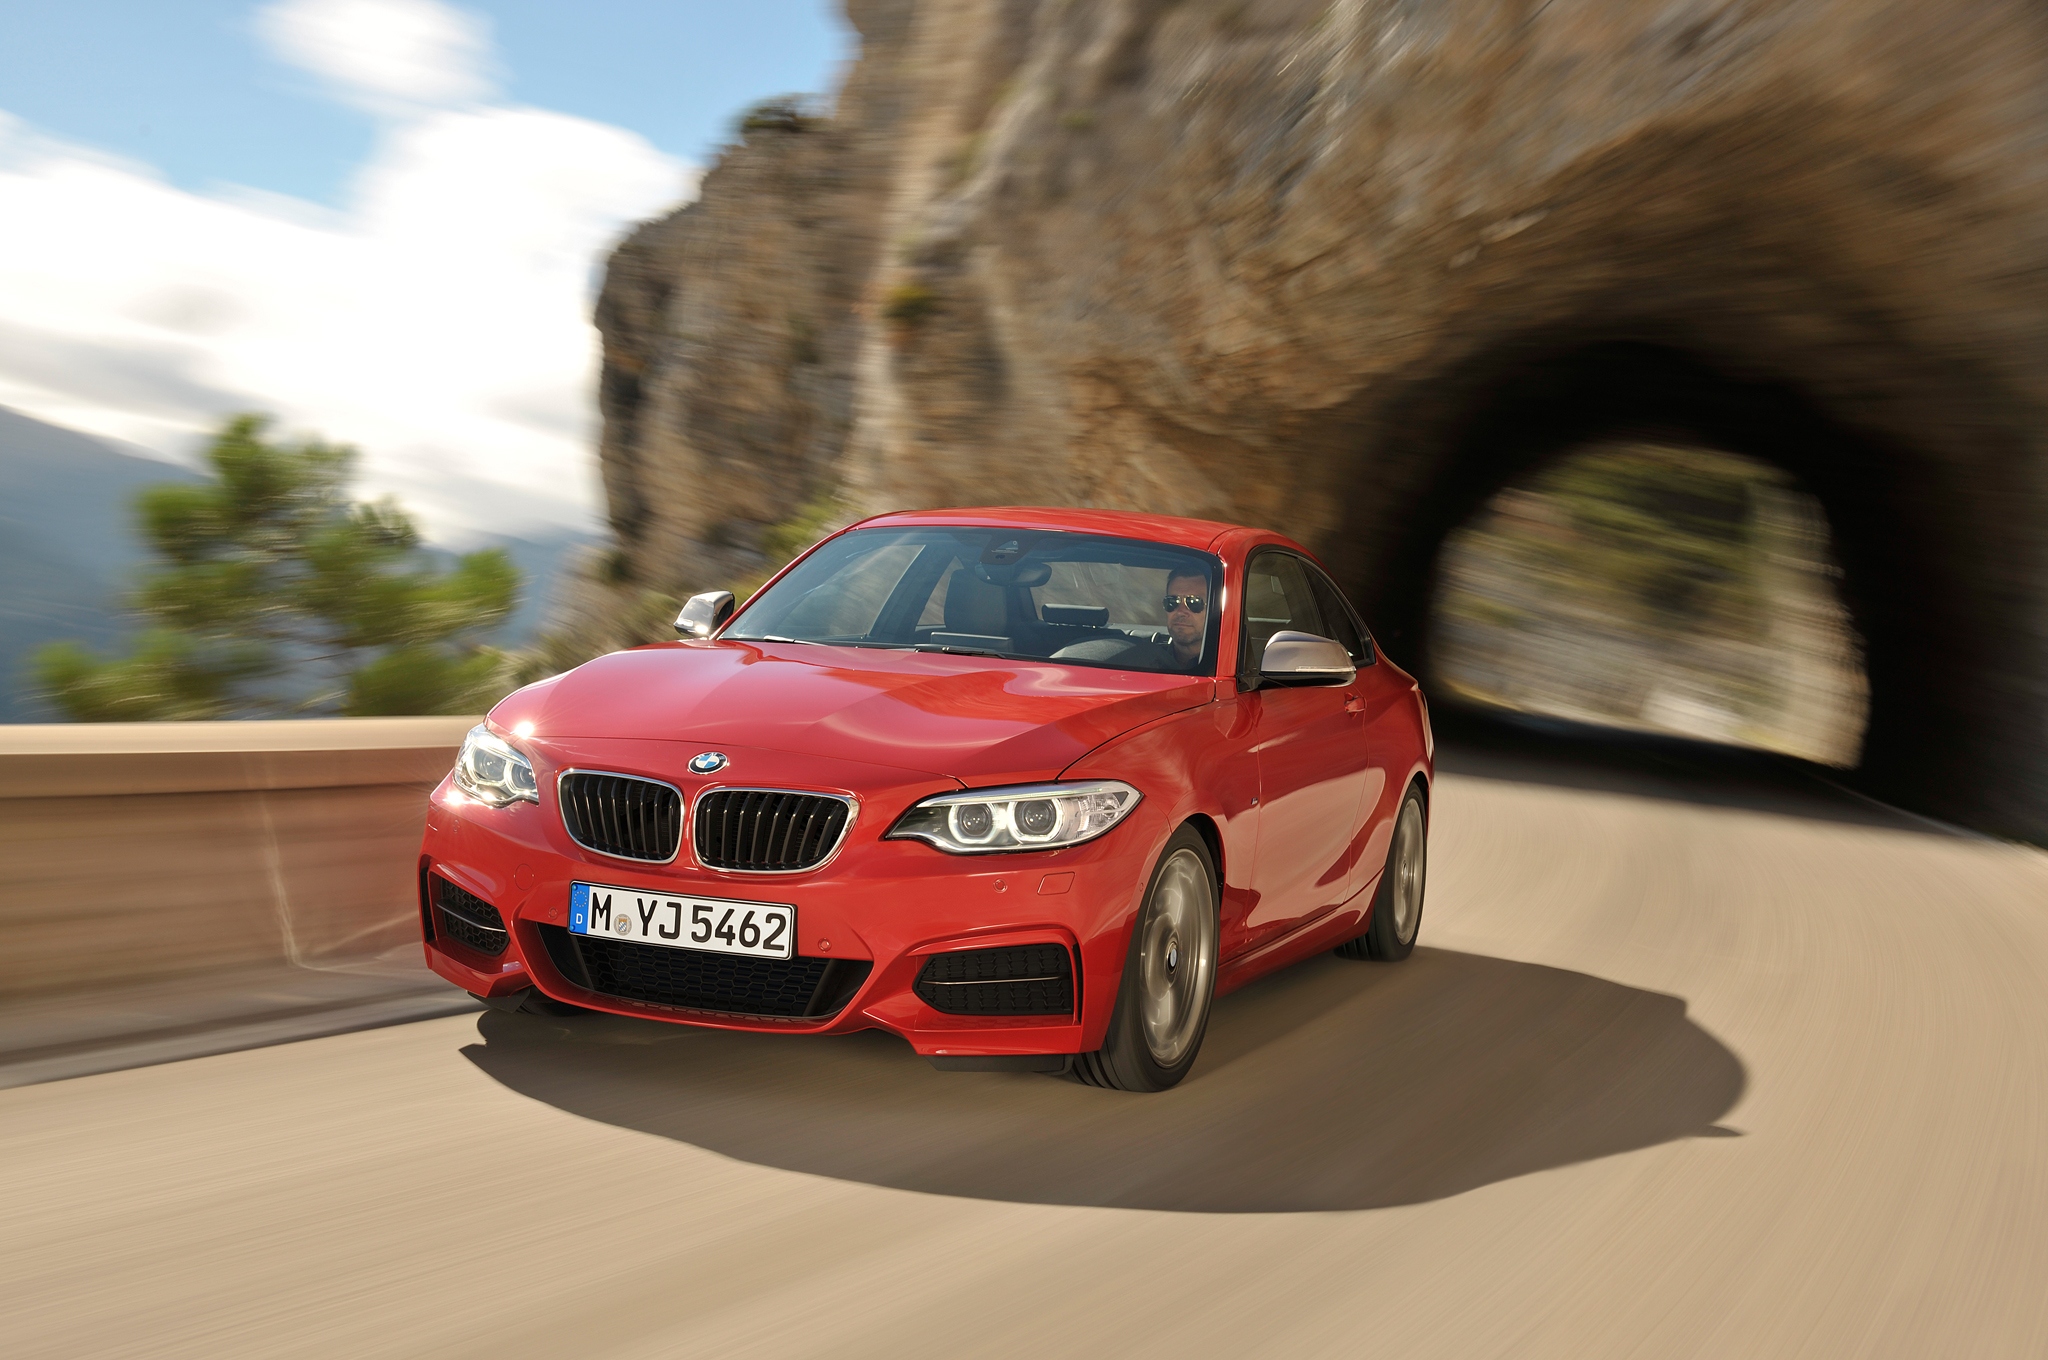 2014 BMW 2 Series Coupe Backgrounds, Compatible - PC, Mobile, Gadgets| 2048x1360 px